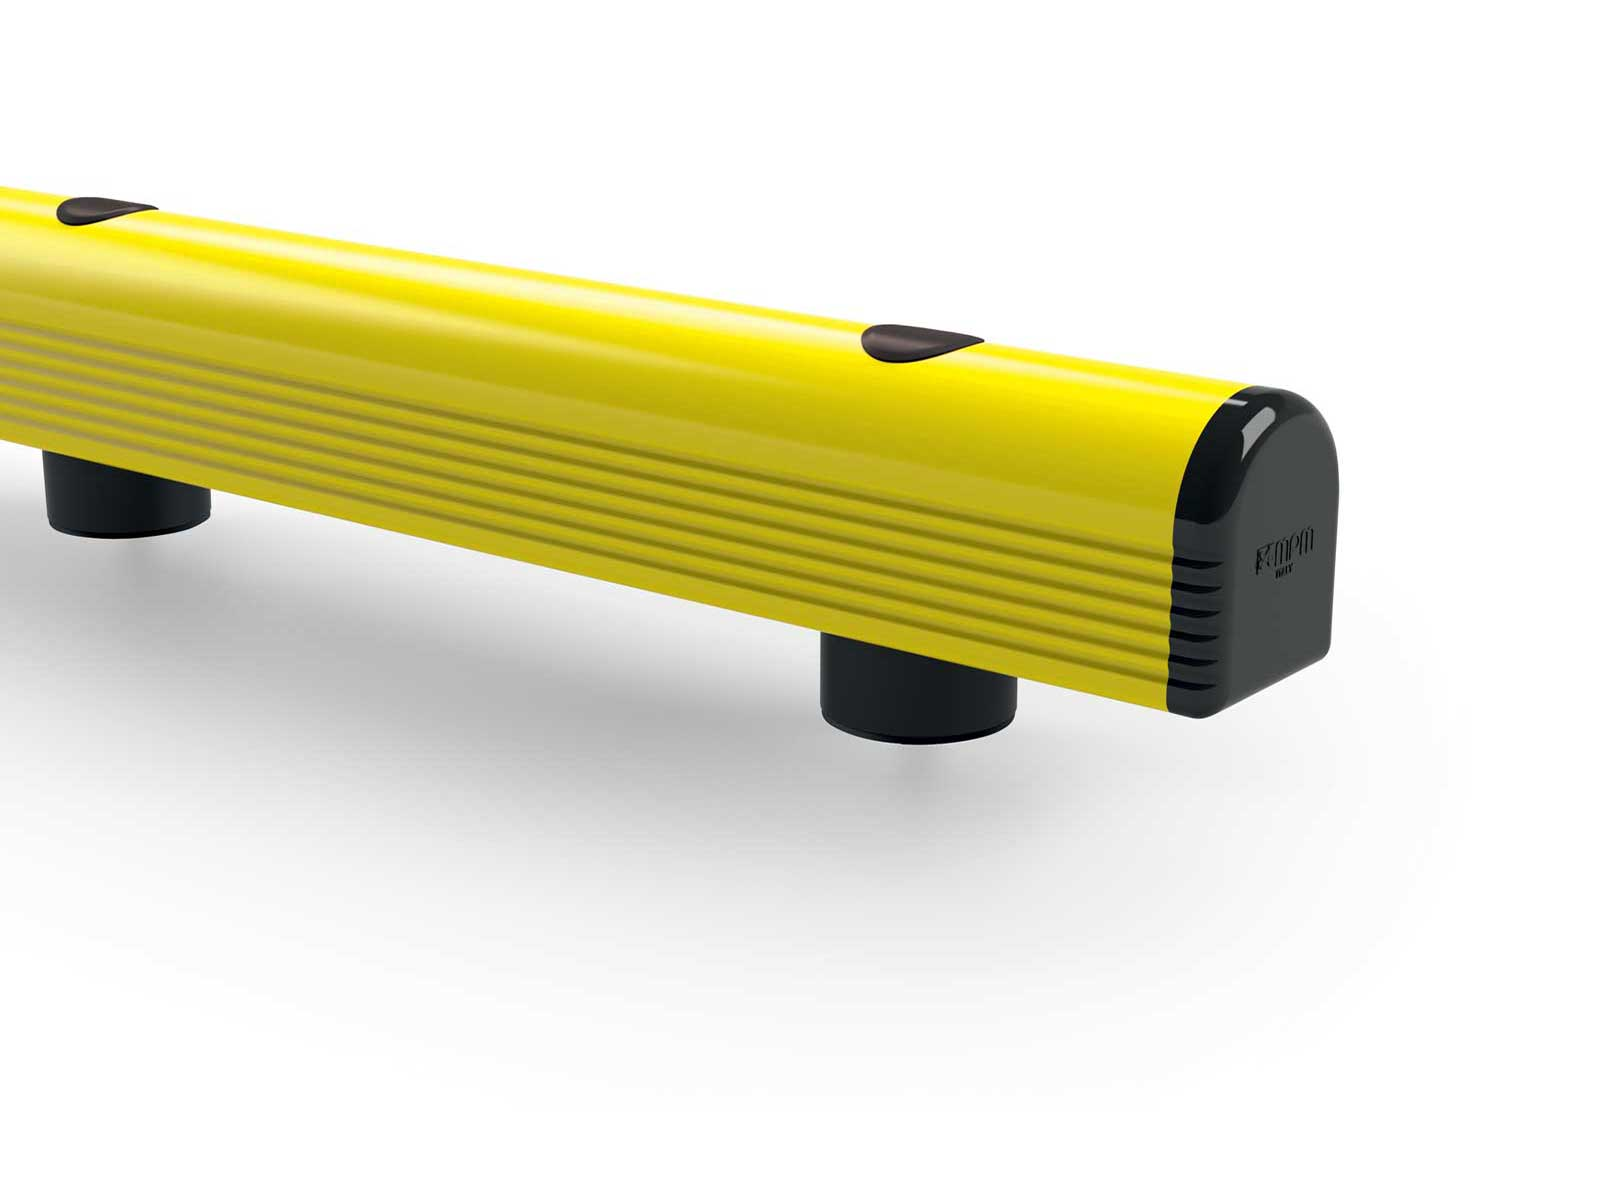 Guardrail-150 Safety Barriers